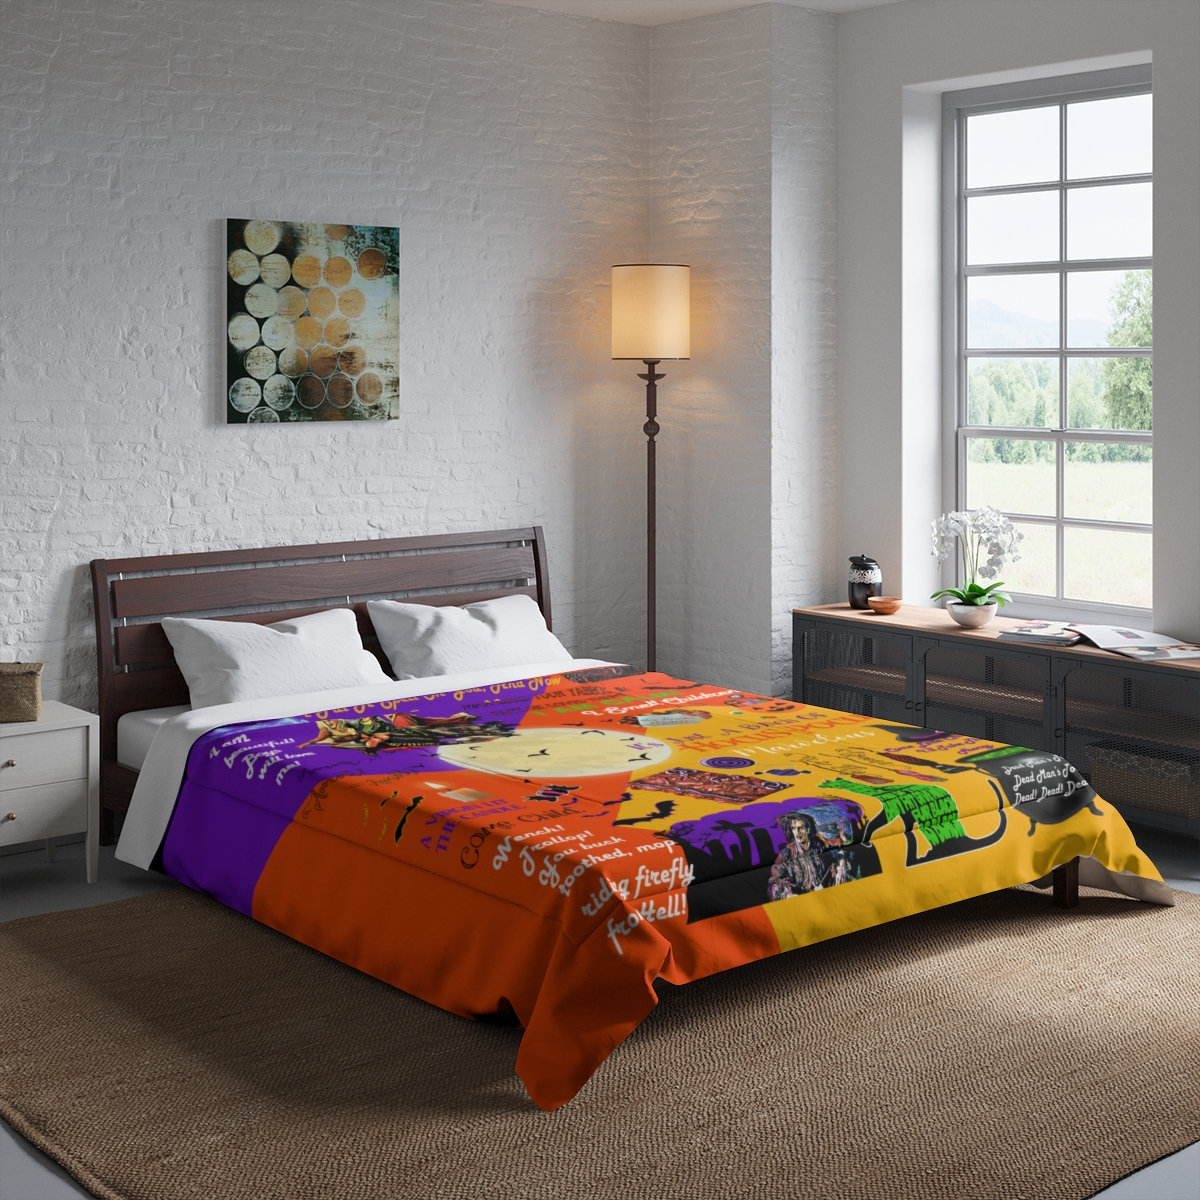 Hocus Pocus Comforter The Sanderson Sisters Halloween Comforter Hocus Pocus Gifts I Put A Spell On You Its Just A Bunch Of Hocus Pocus Hocus Comforter Hocus Pocus